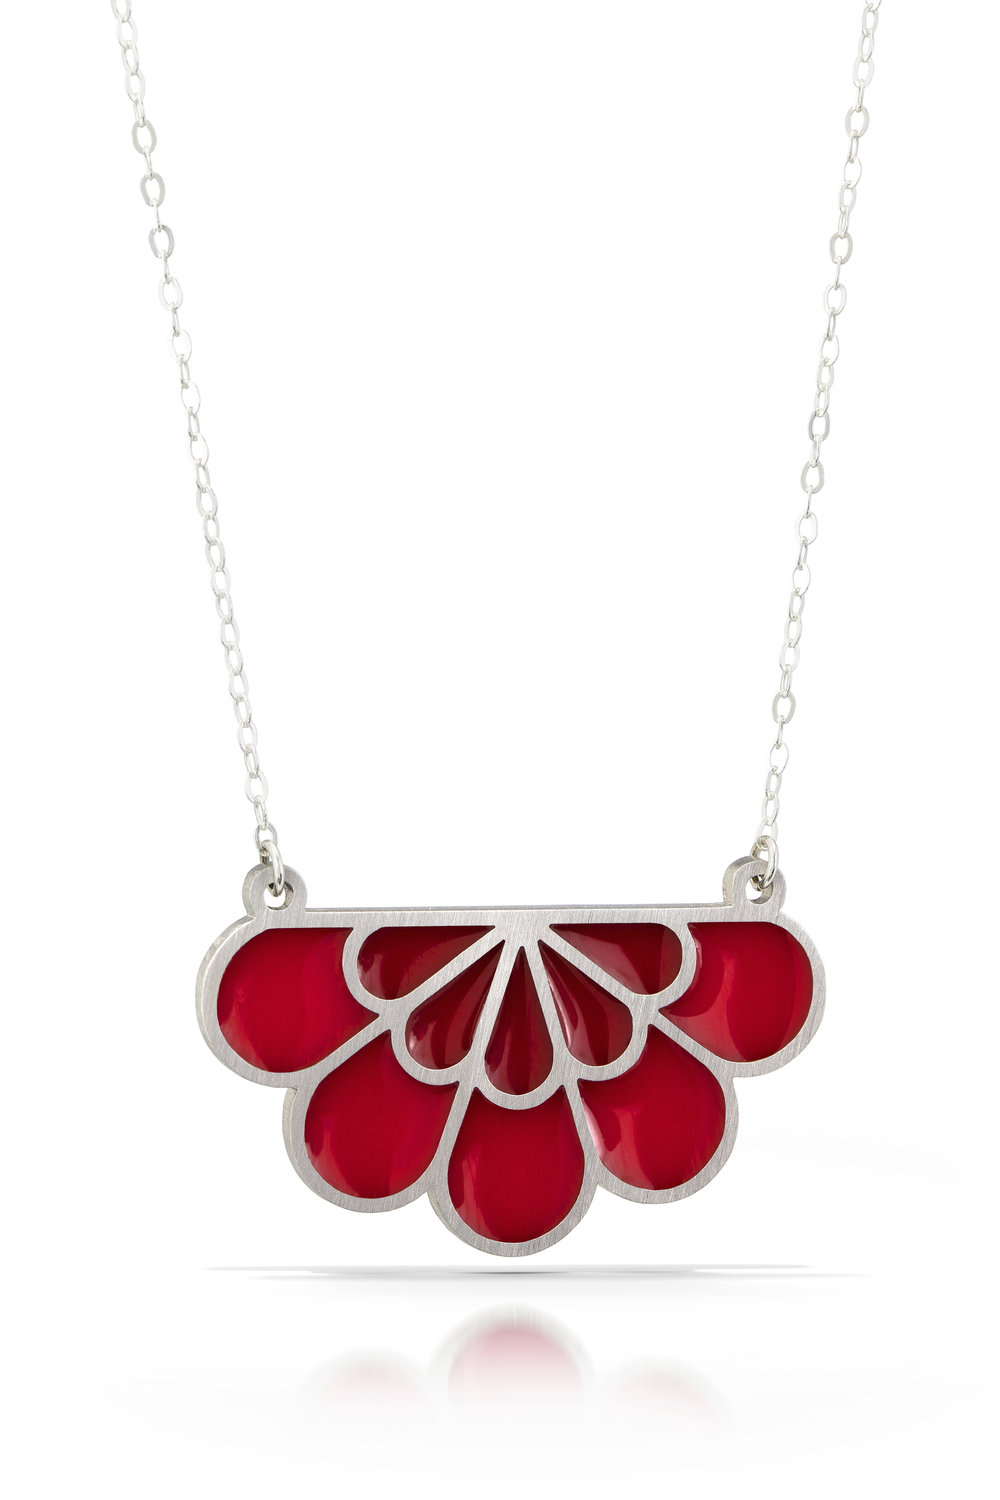 Petals necklace.jpg